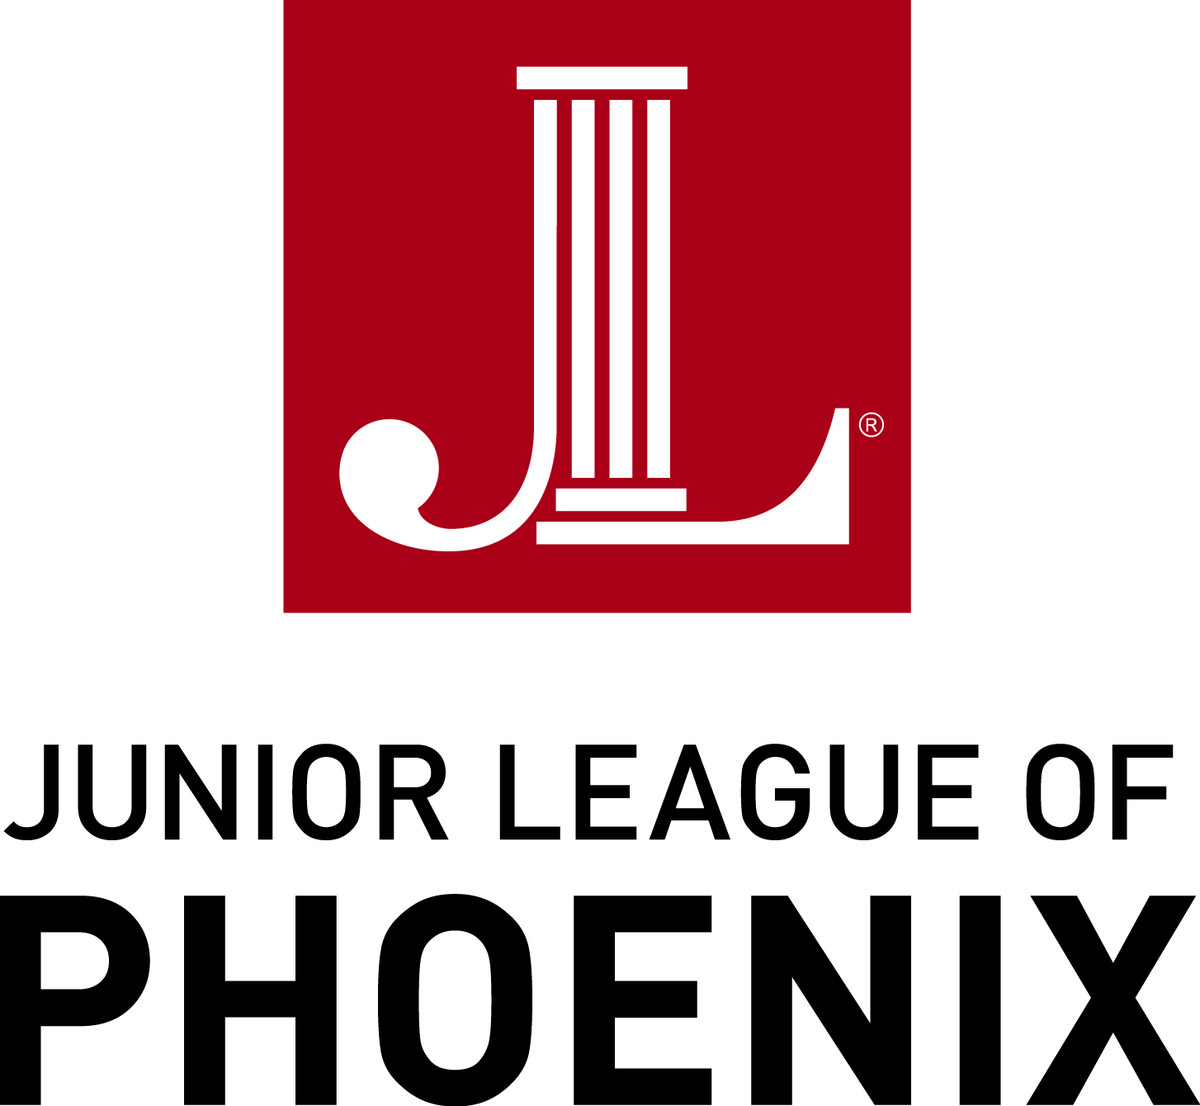 JUNIOR LEAGUE OF PHOENIX INC